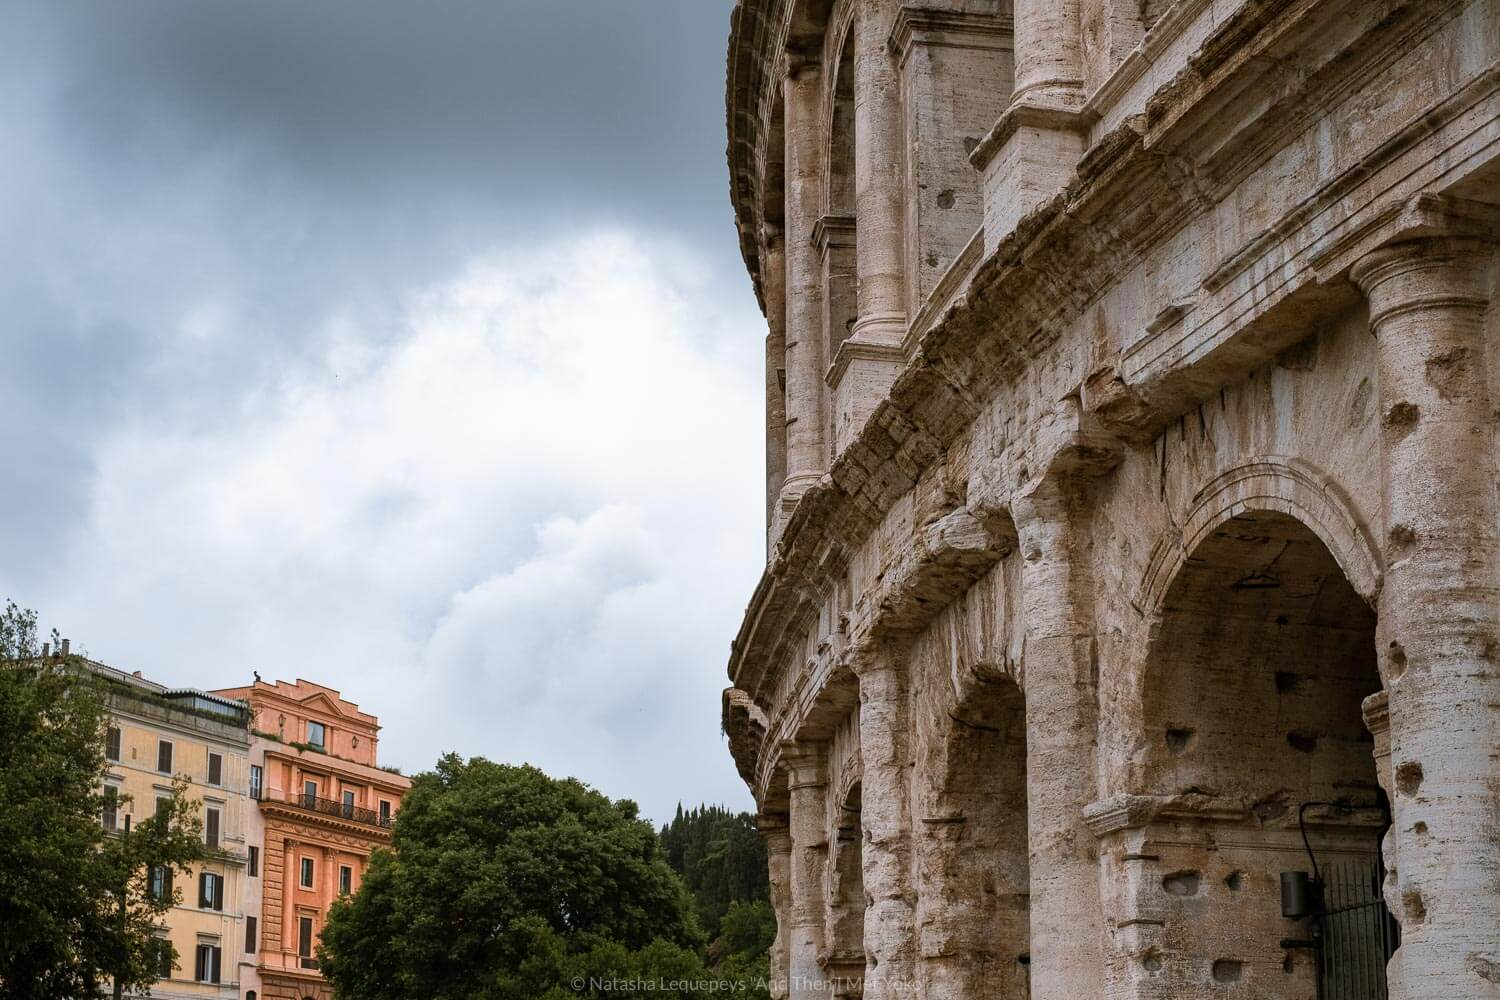 """The outside of the Colosseum in Rome, Italy. Travel photography and guide by © Natasha Lequepeys for """"And Then I Met Yoko"""". #rome #italy #travelblog #travelphotography"""